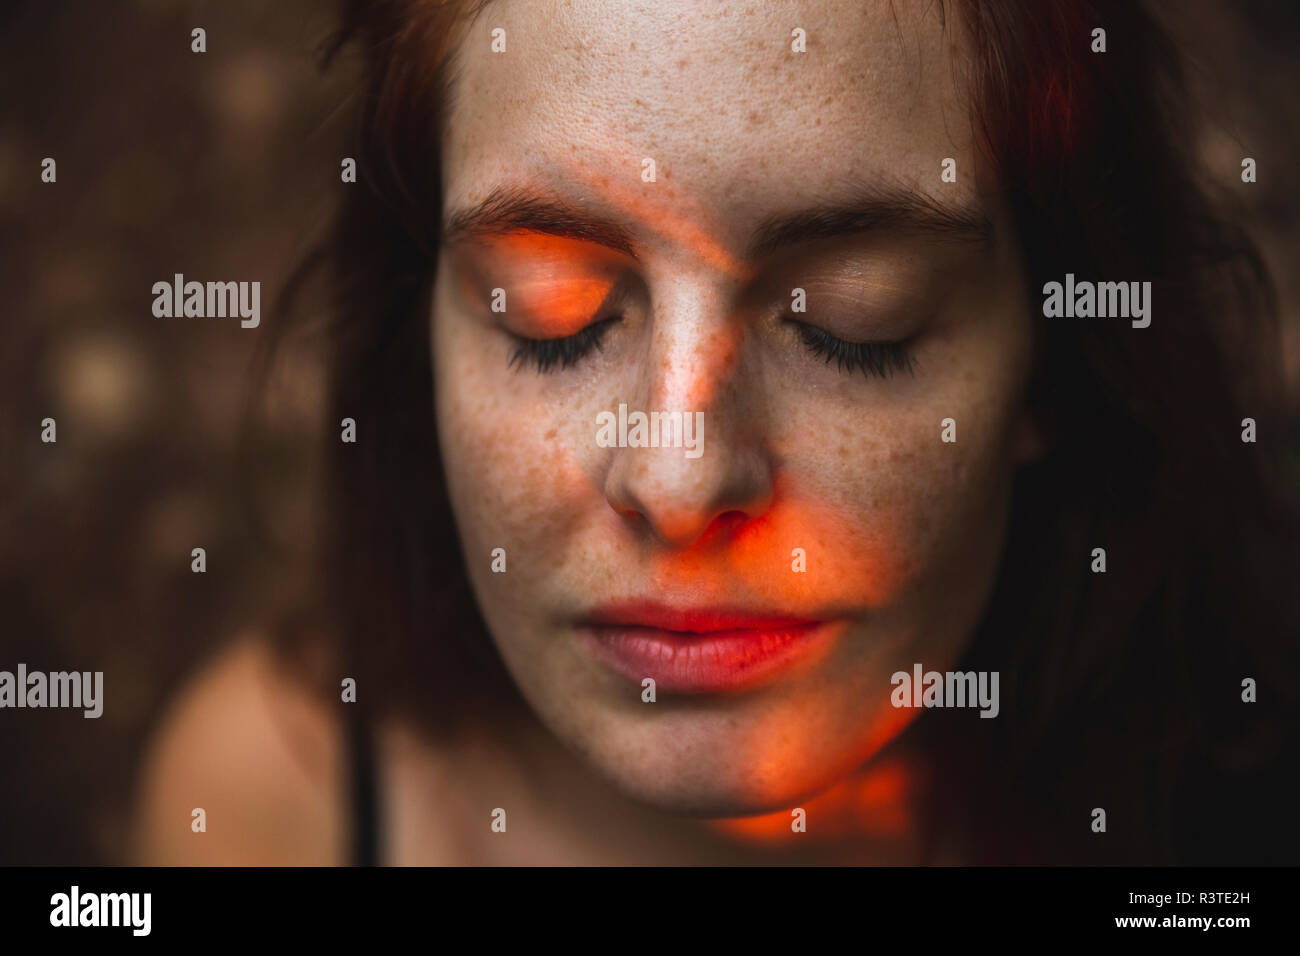 Portrait of young woman with freckles closing her eyes Stock Photo